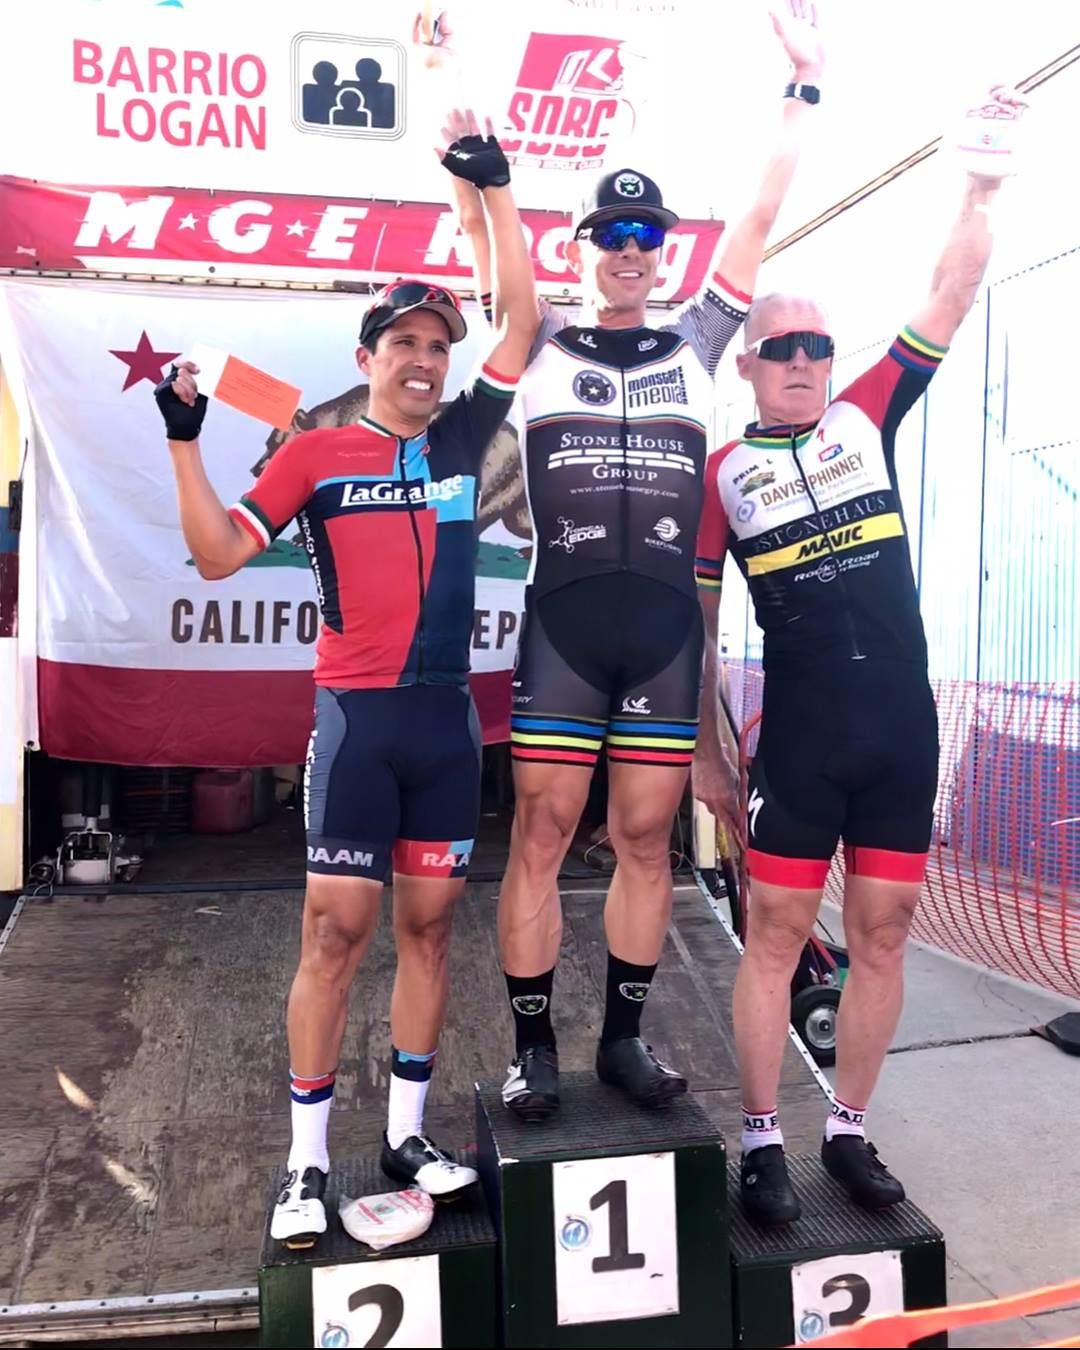 Victor and his aero socks on the podium at Barrio Logan